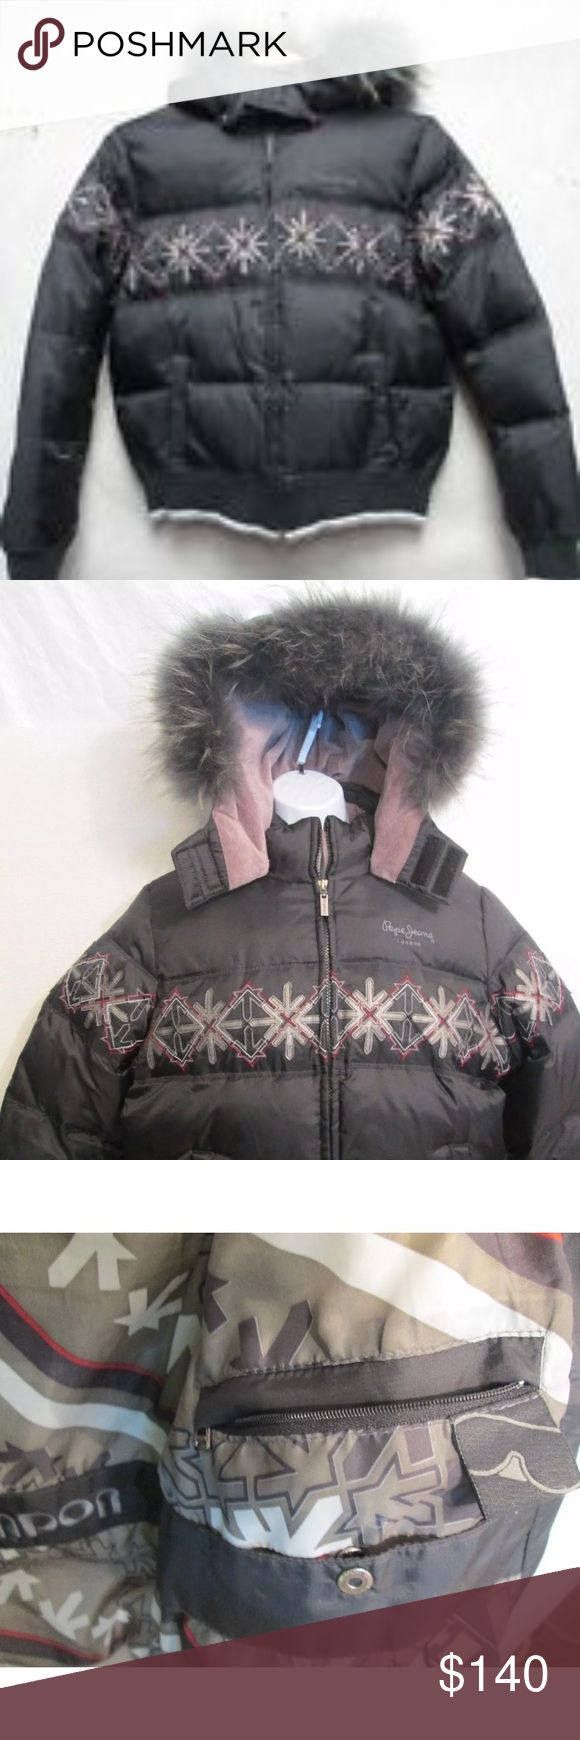 "Pepe Jeans Puffer Lg down jacket w/coyote fur trim Excellent. Condition .. no major issues..no major issues  -------------------------------------------------- SHOULDERS 16"" *  UNDERARM TO UNDERARM 22"" *  SLEEVES 24"" * LENGTH 23"" *  --------------------------------------------------- PEPE JEANS * London *  Snap Off Coyote Fur Hood  Puffer Down/Feather Jacket  Large -------------------------------------------------- Shell 100% Nylon * Lining 100% Polyester Pepe Jeans Jackets & Coats Puffers"